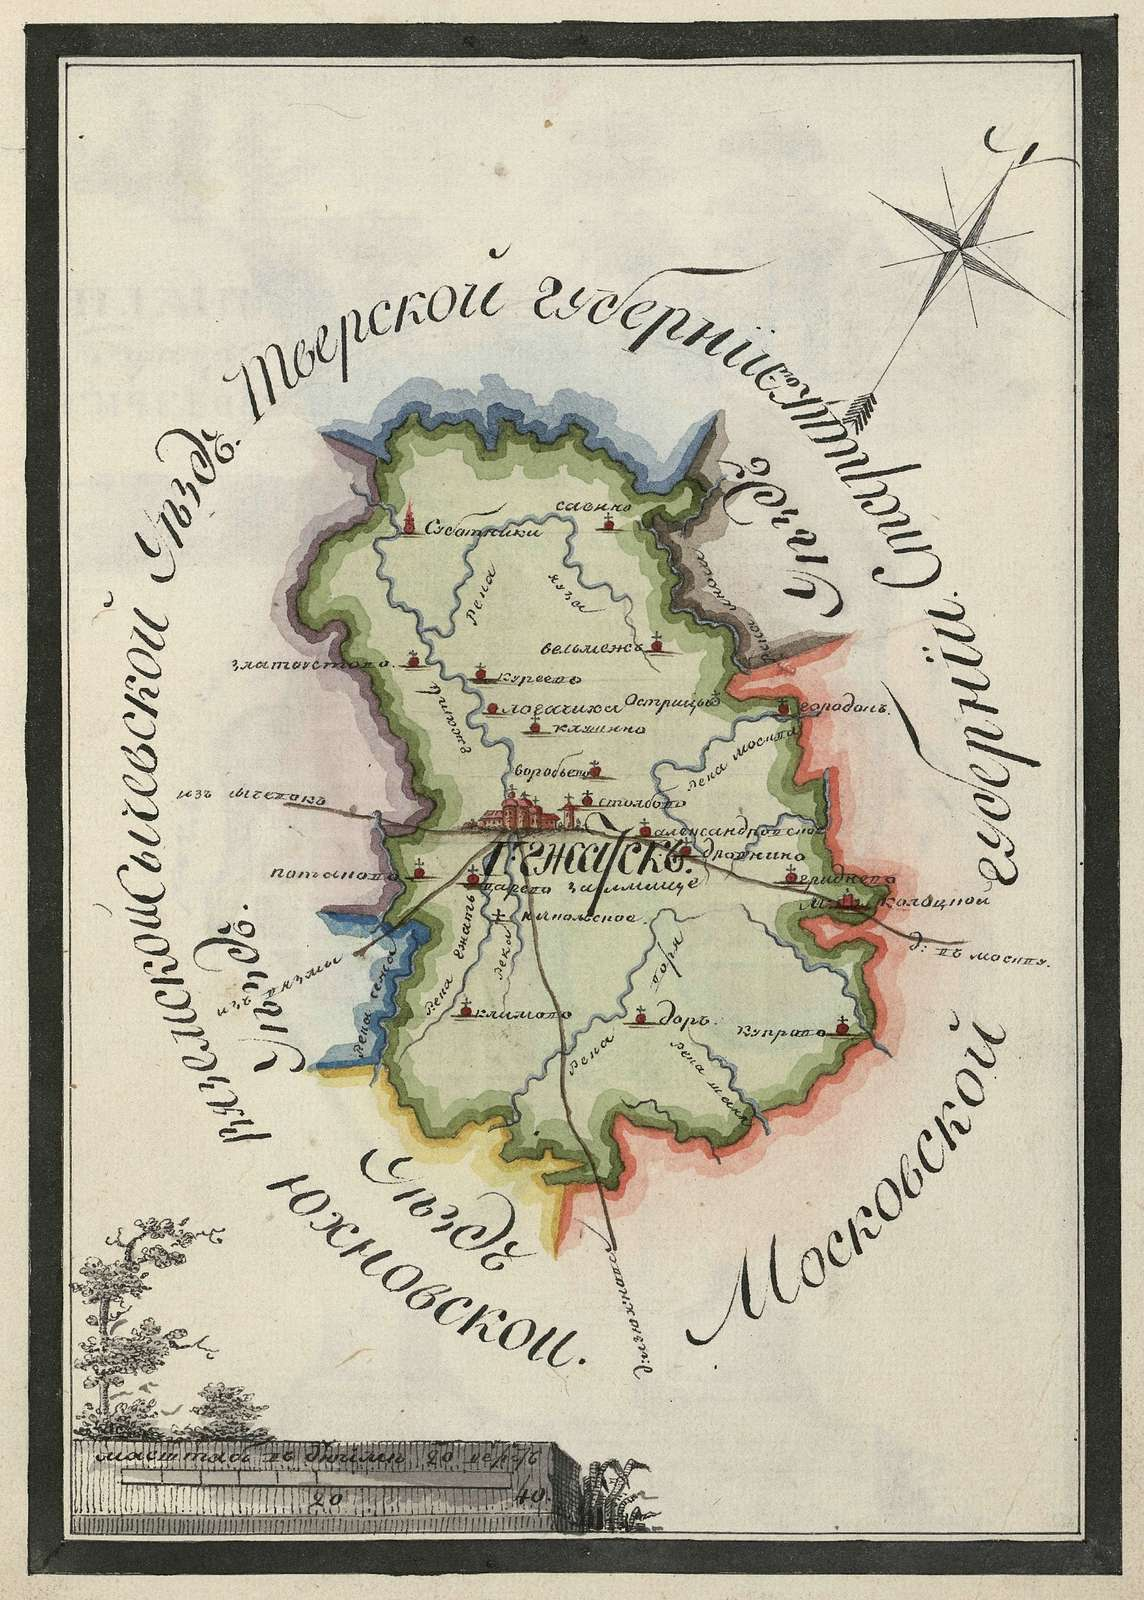 Gzhatsk county plan.